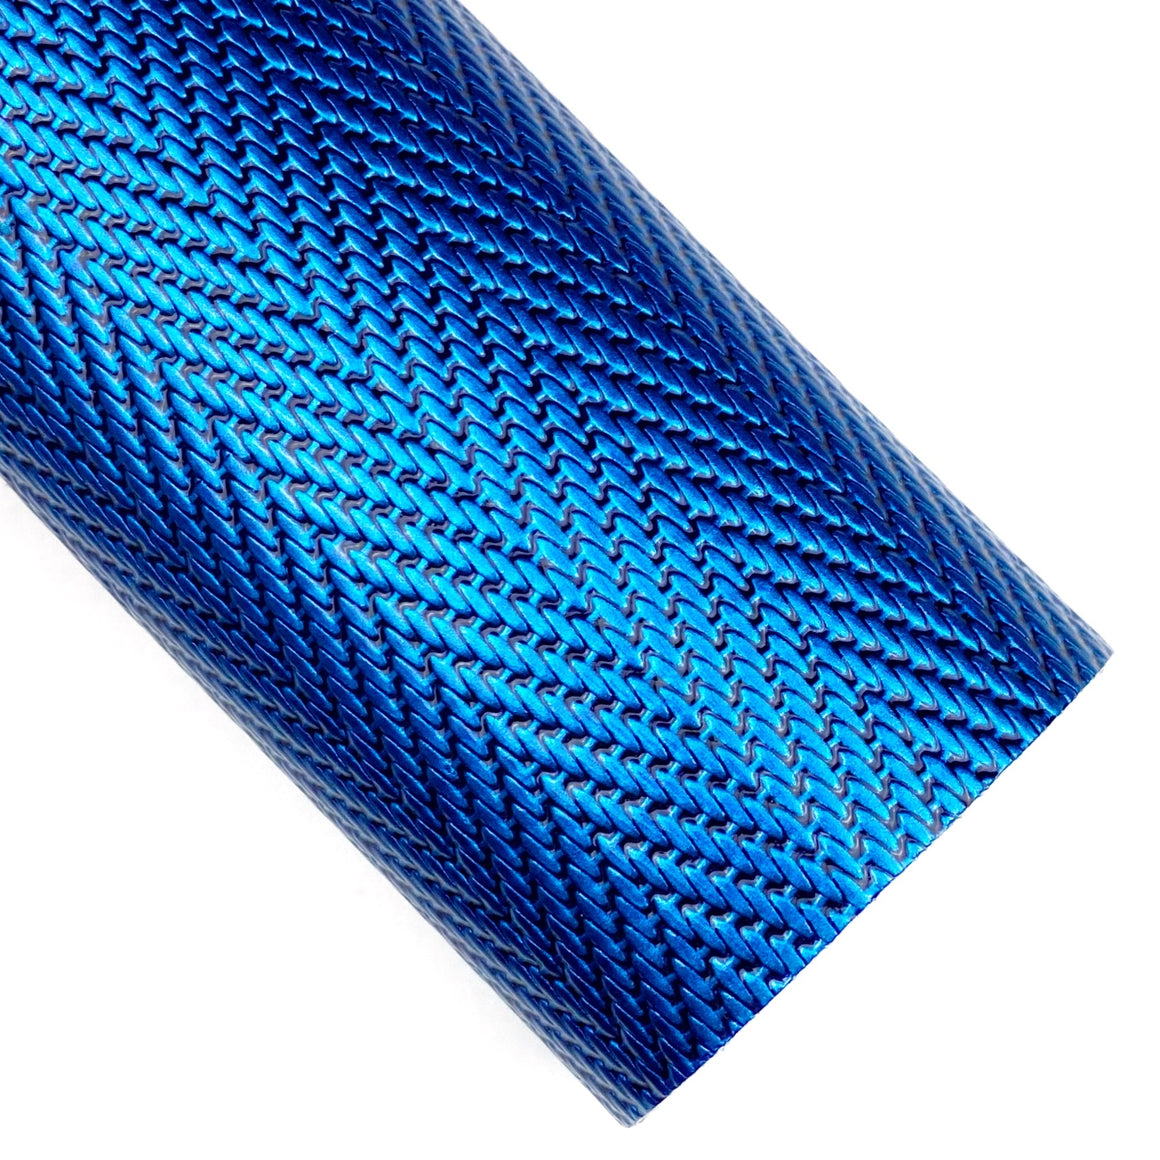 Blue Herringbone Embossed Patent Vegan Leather